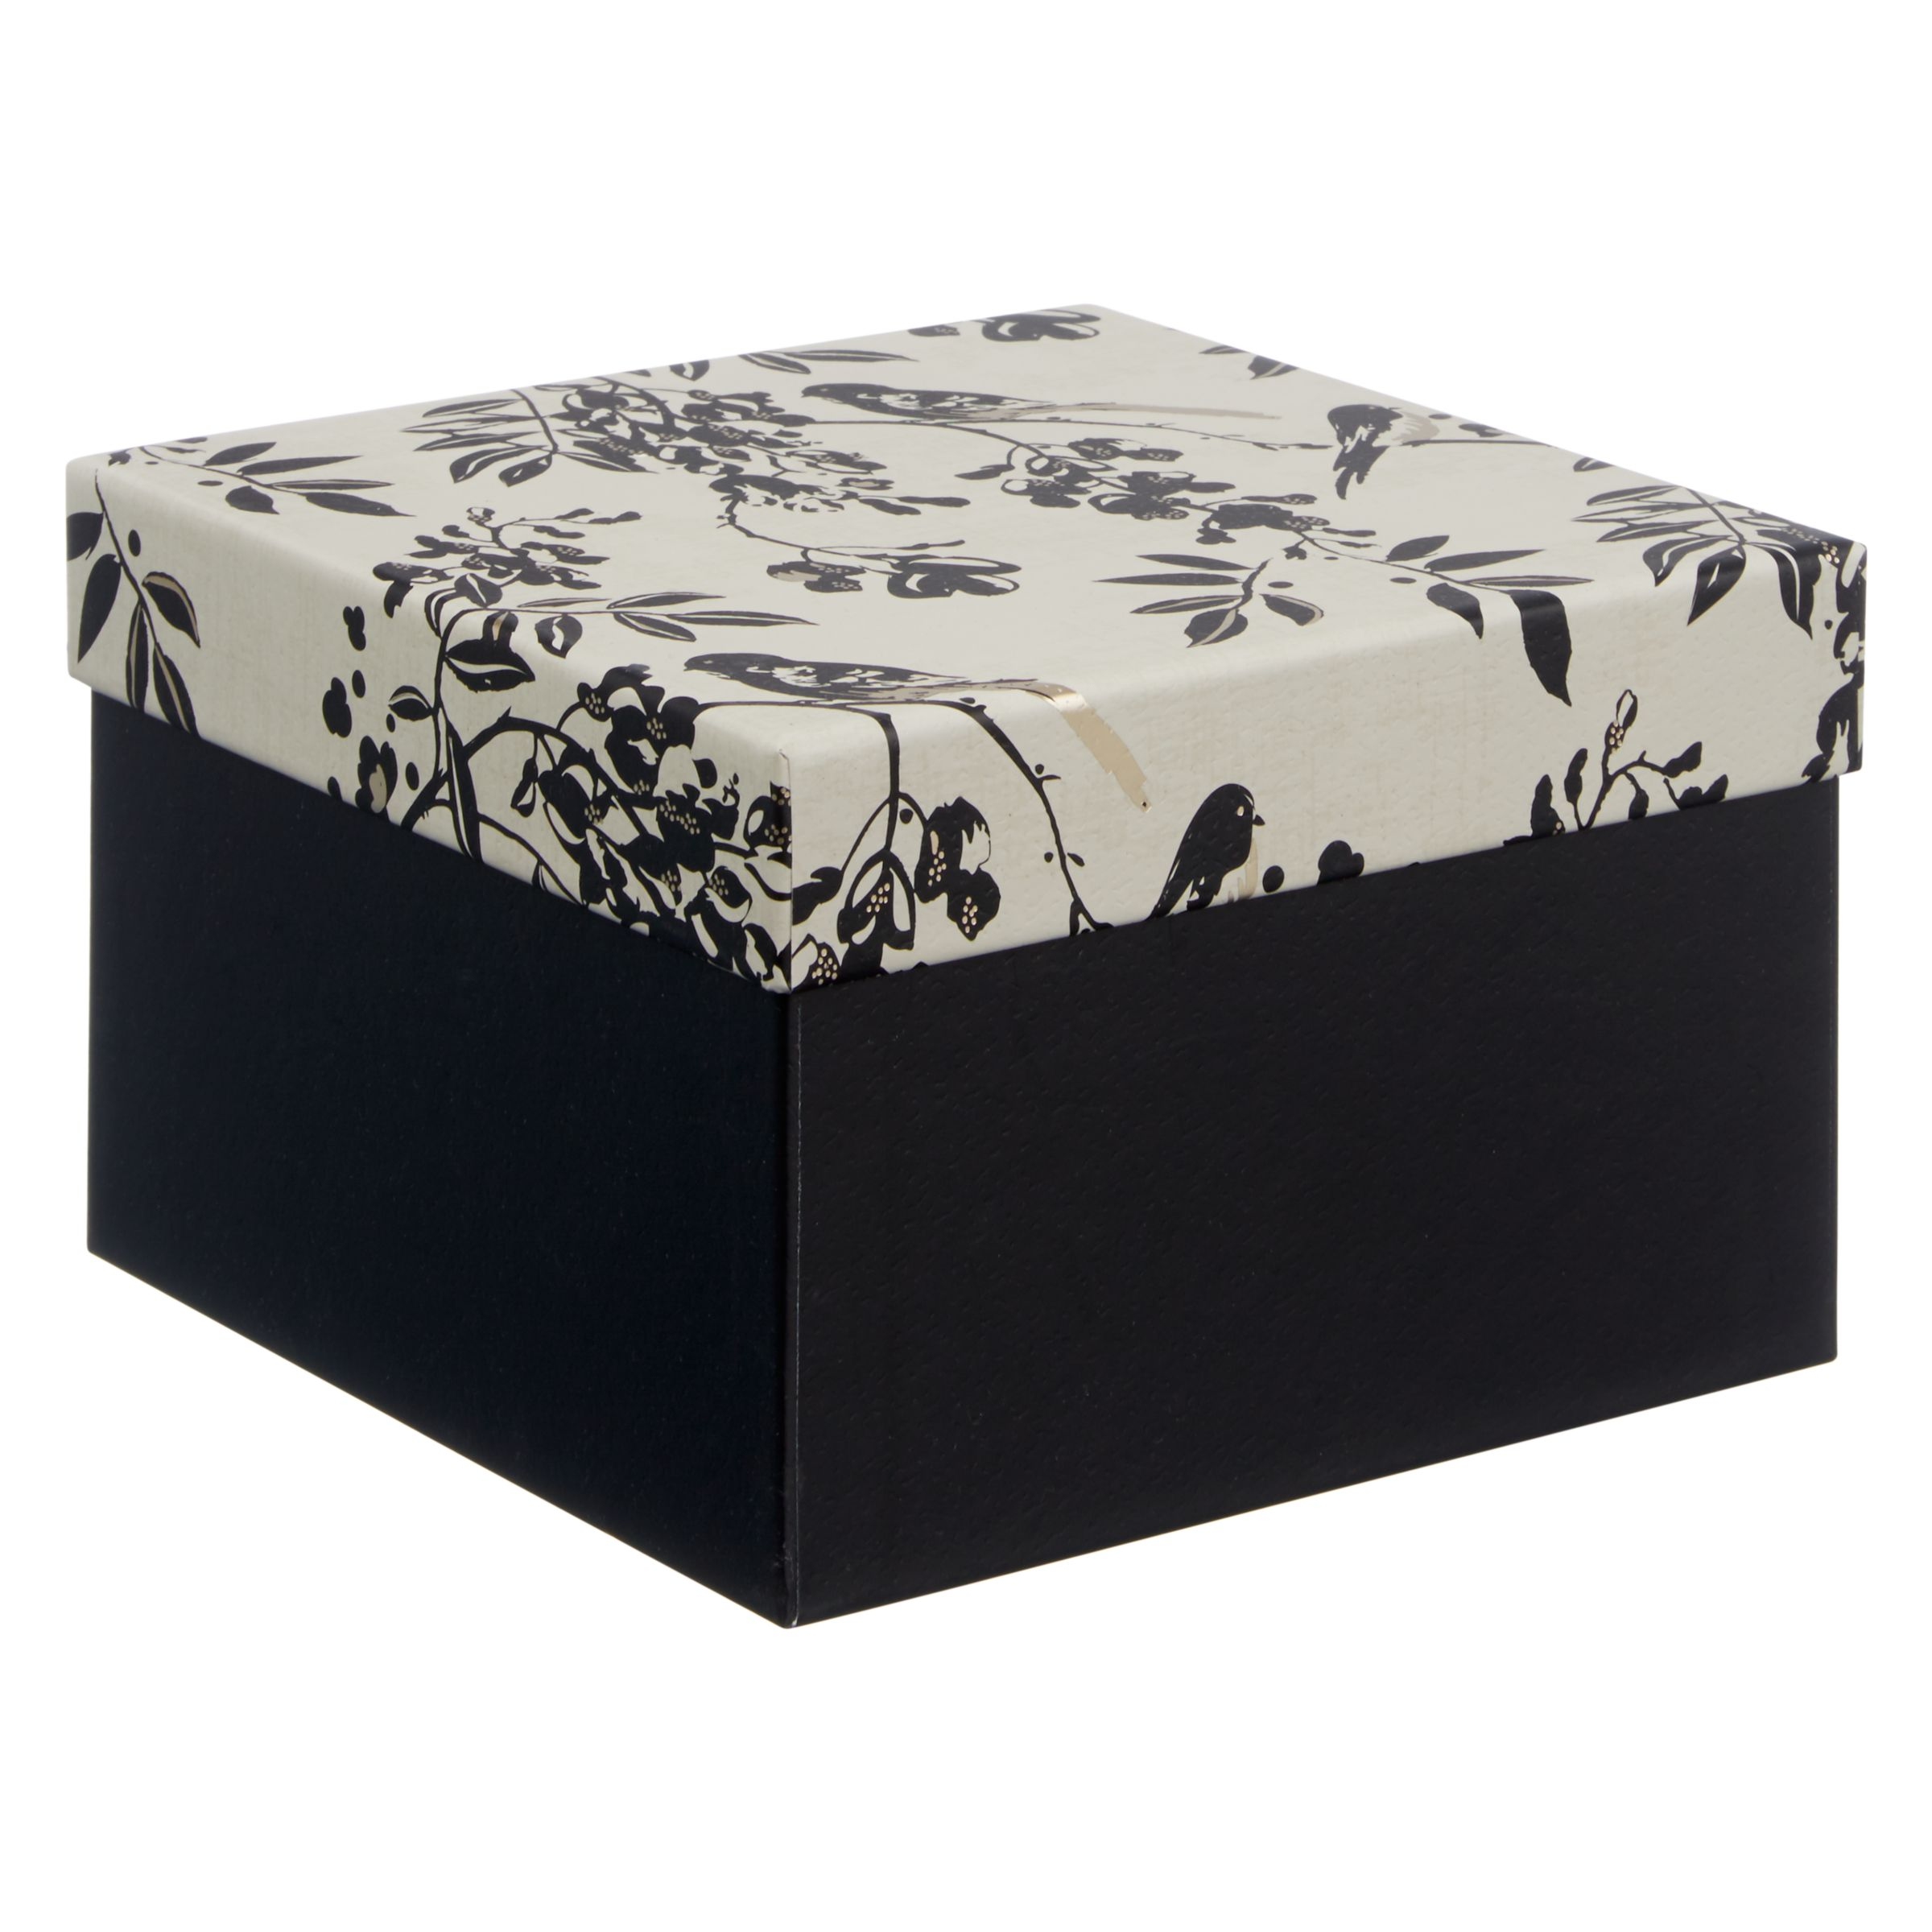 John Lewis Wedding Gift List Review : Buy John Lewis Wedding Gift Box, Small, Black John Lewis